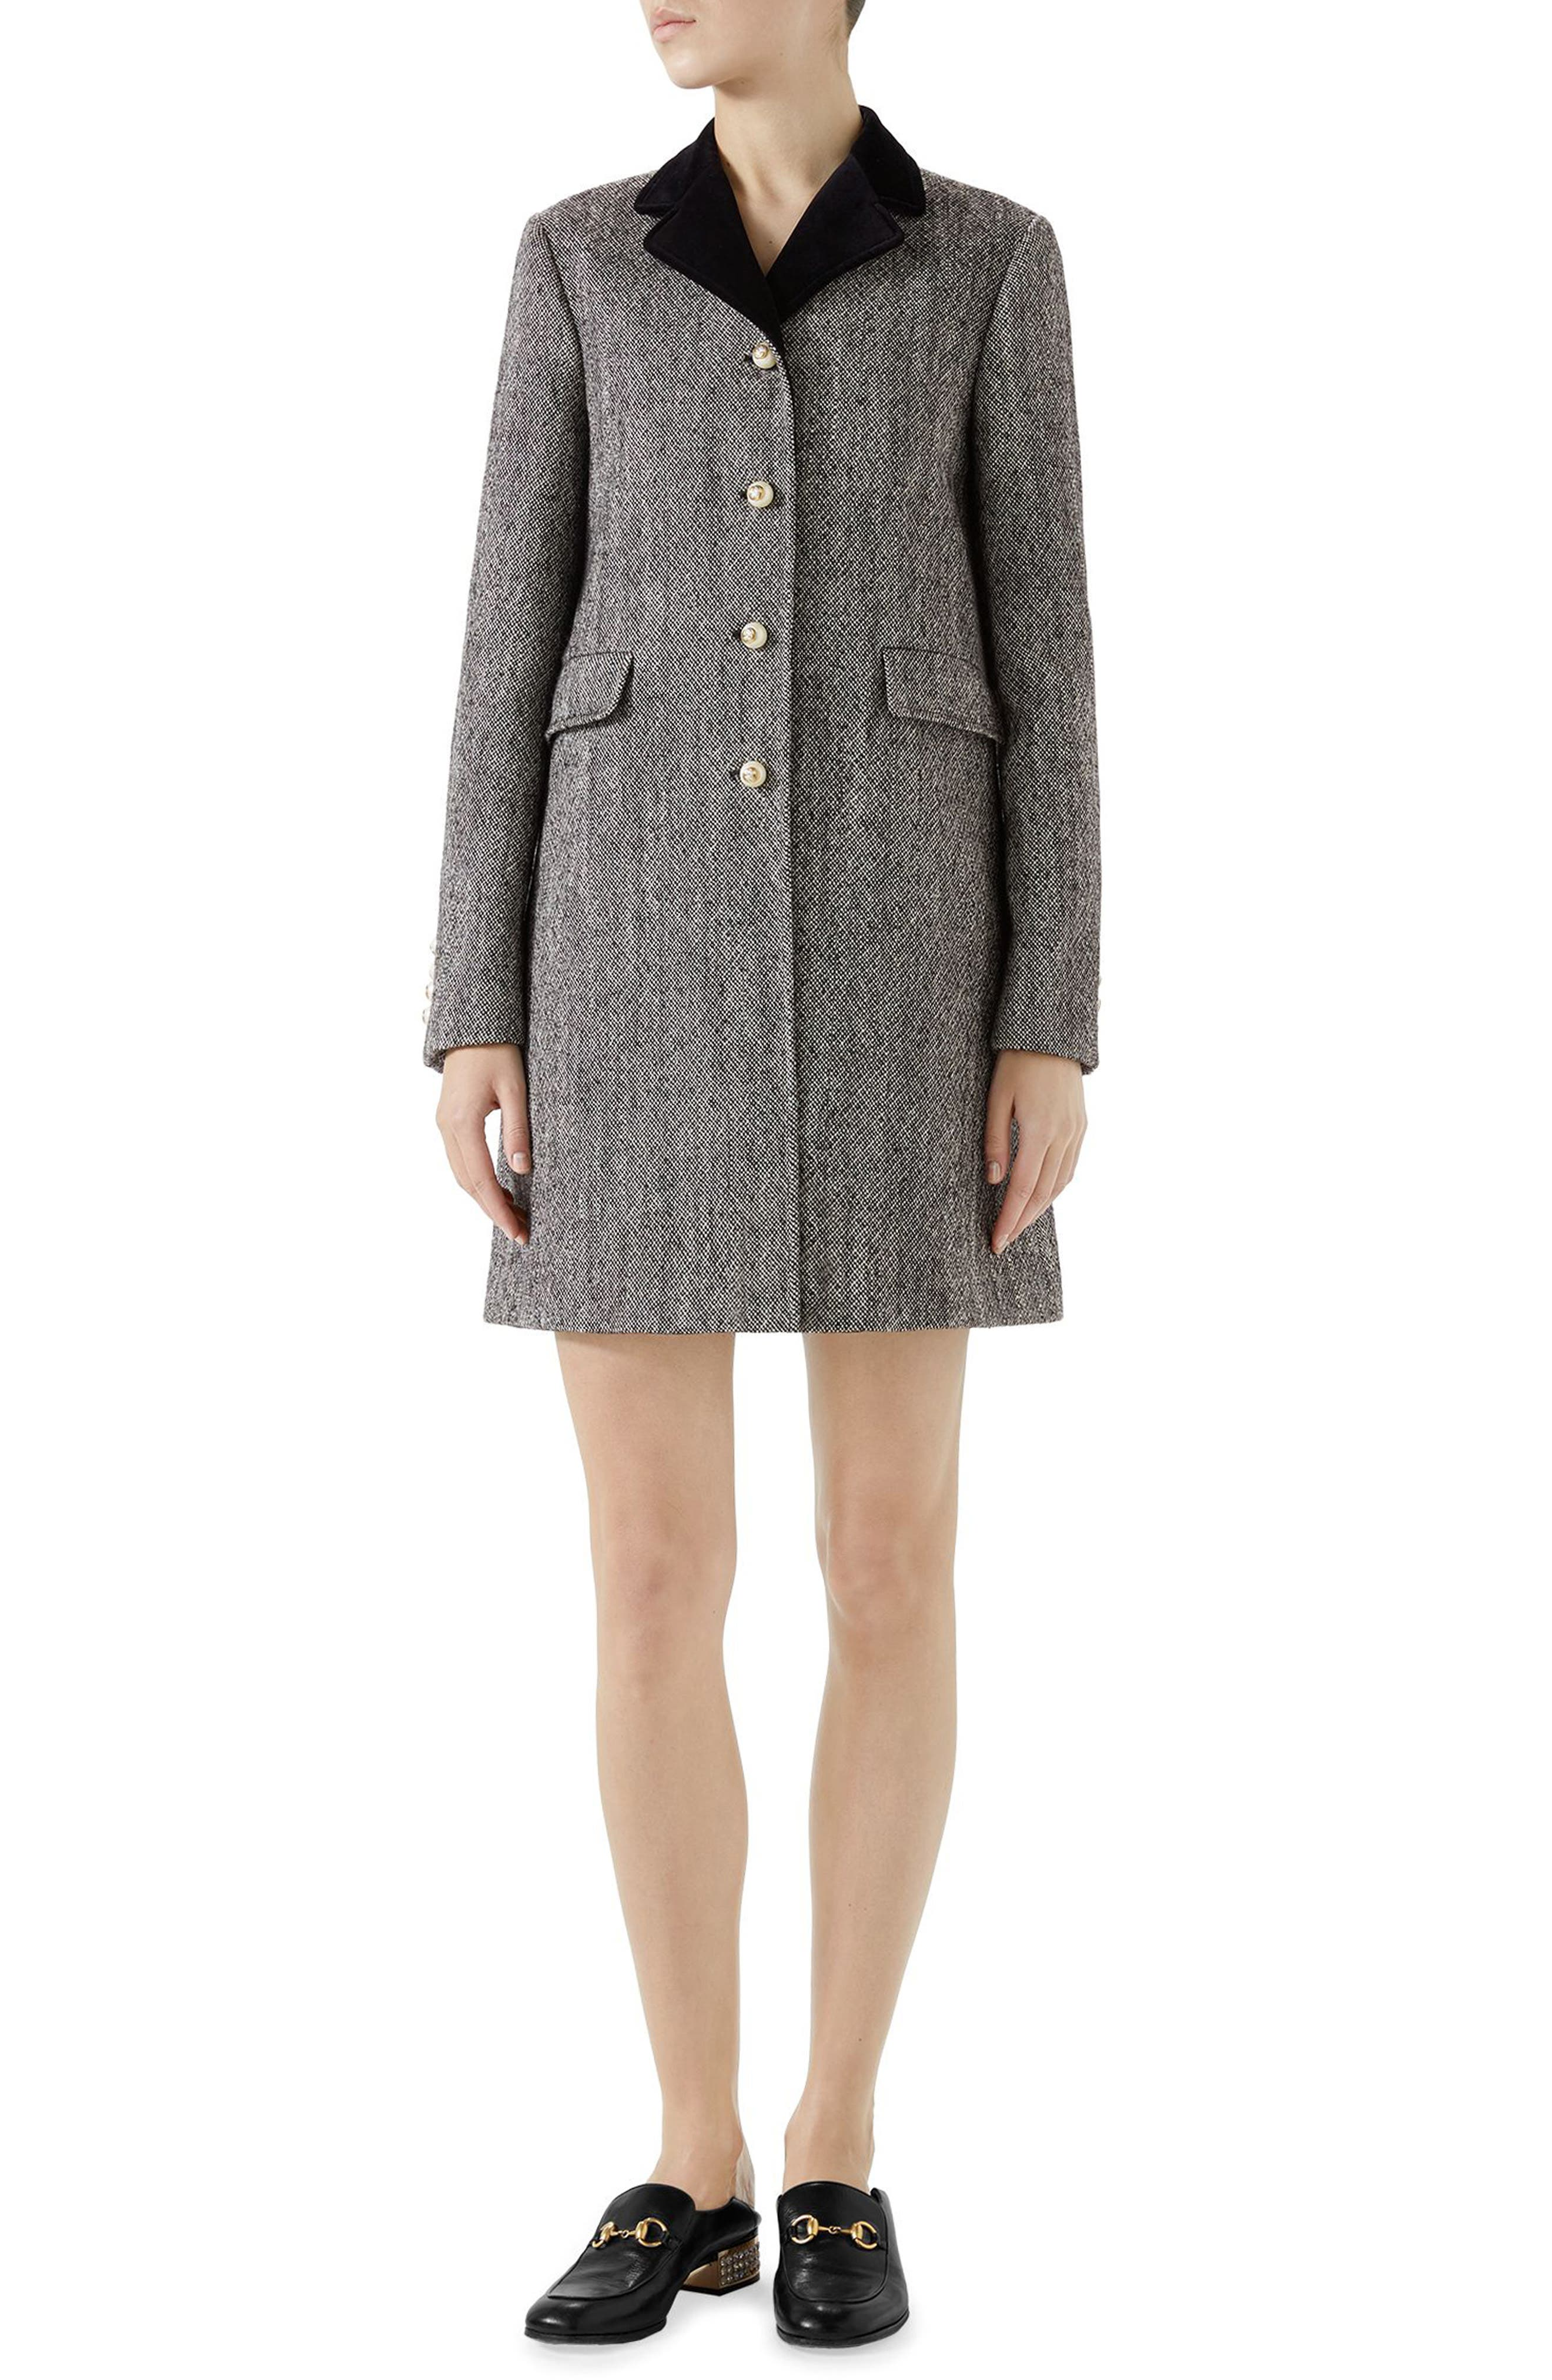 Gucci Velvet Collar Wool Blend Coat